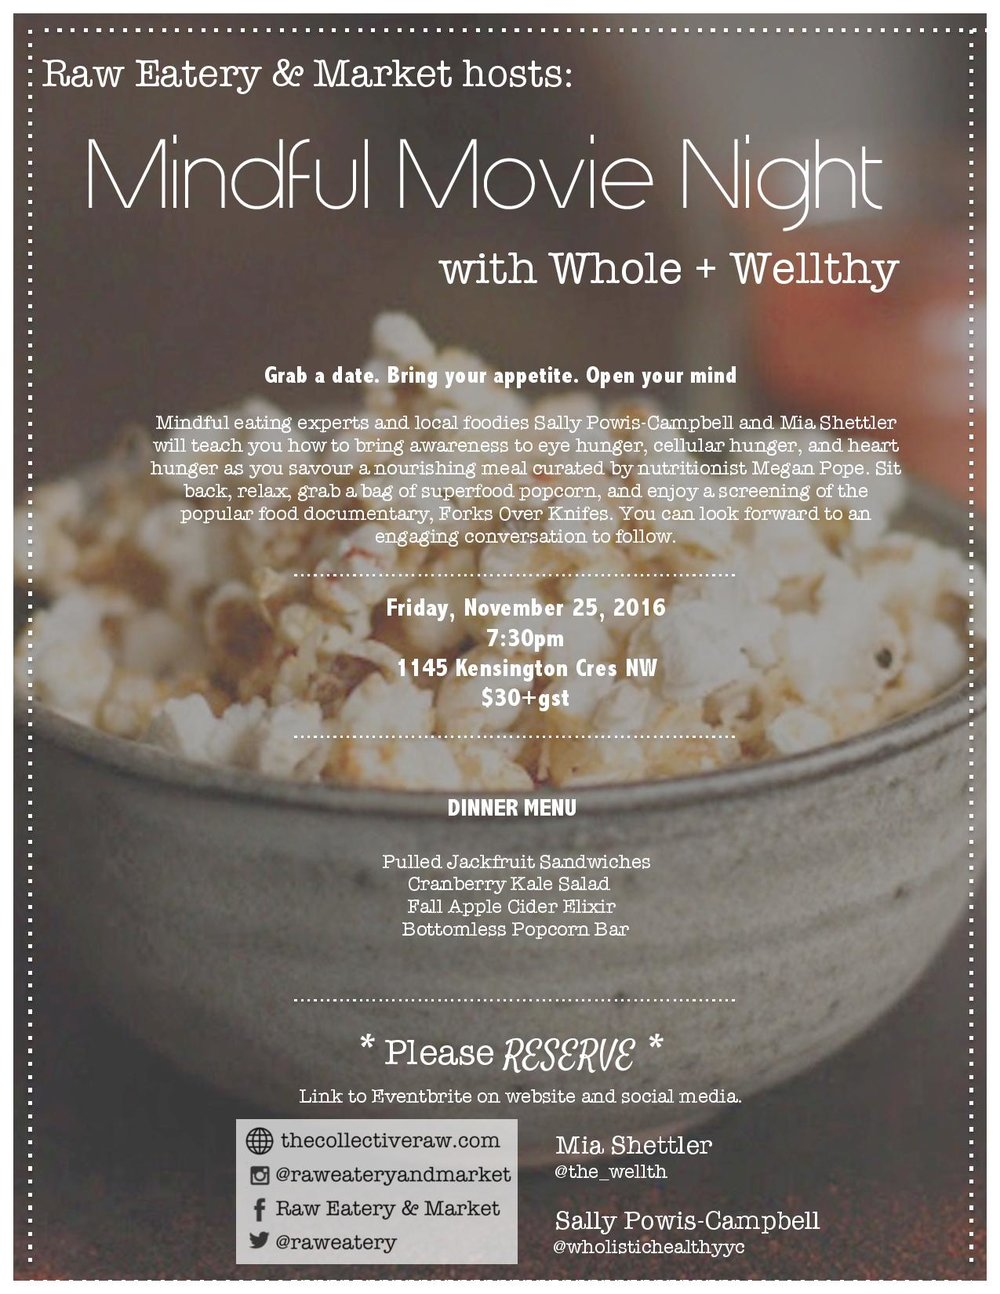 Mindful Movie Night Poster 2-page-001.jpg